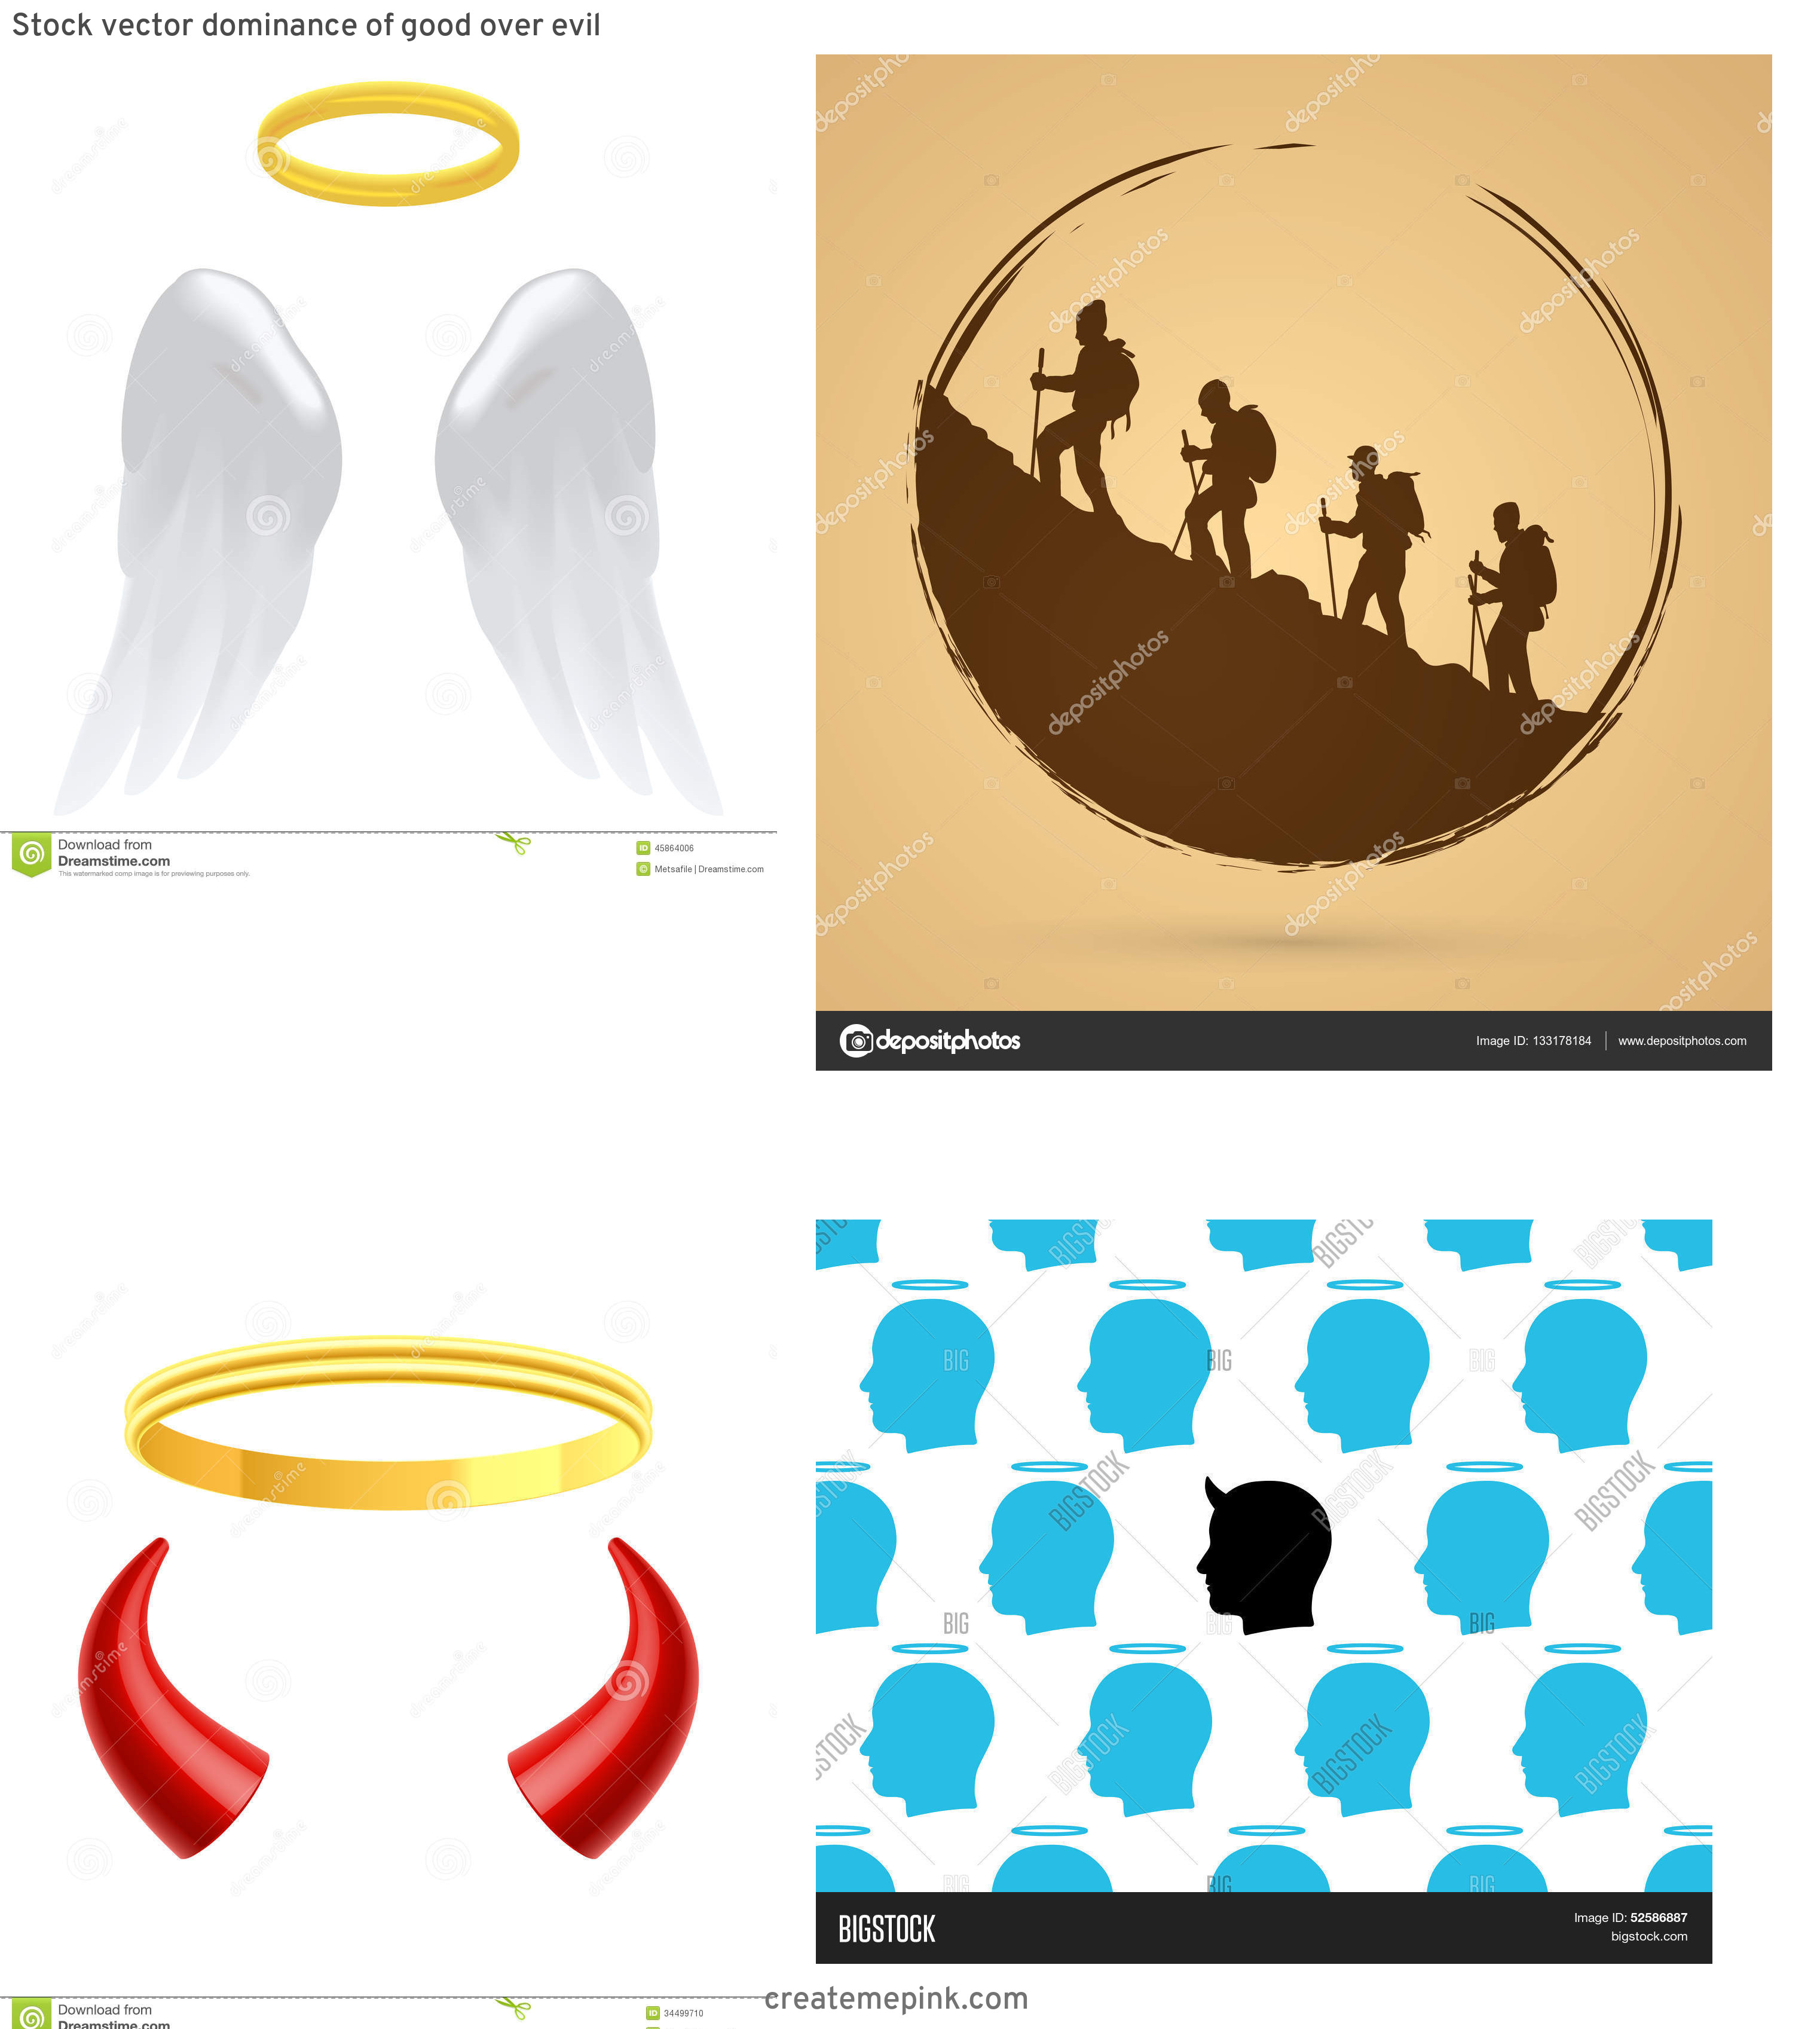 Halos Vector Silhouettes: Stock Vector Dominance Of Good Over Evil